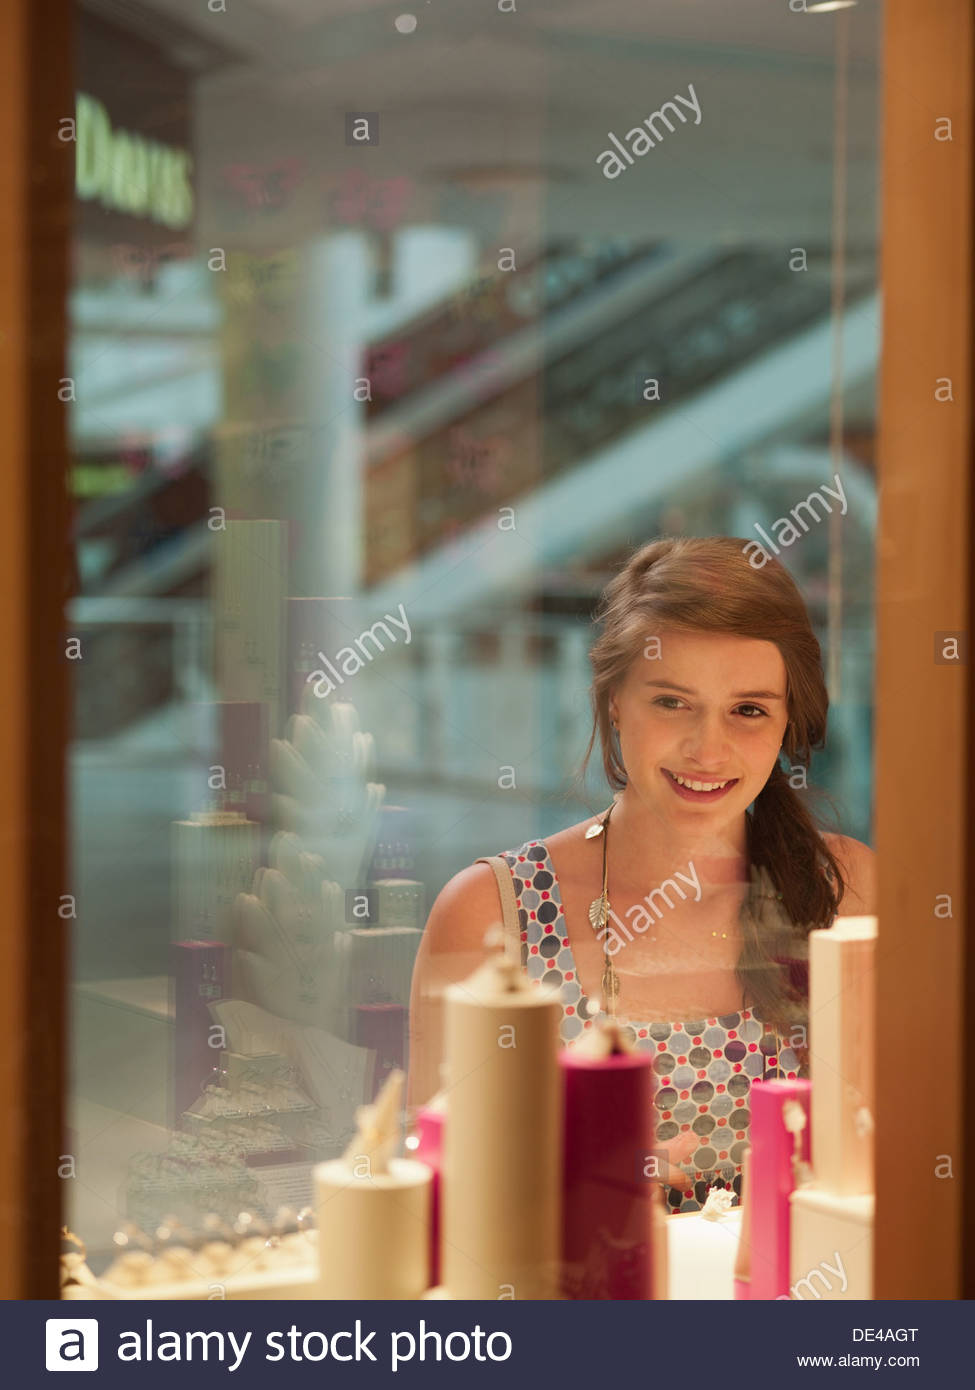 Woman shopping Photo Stock